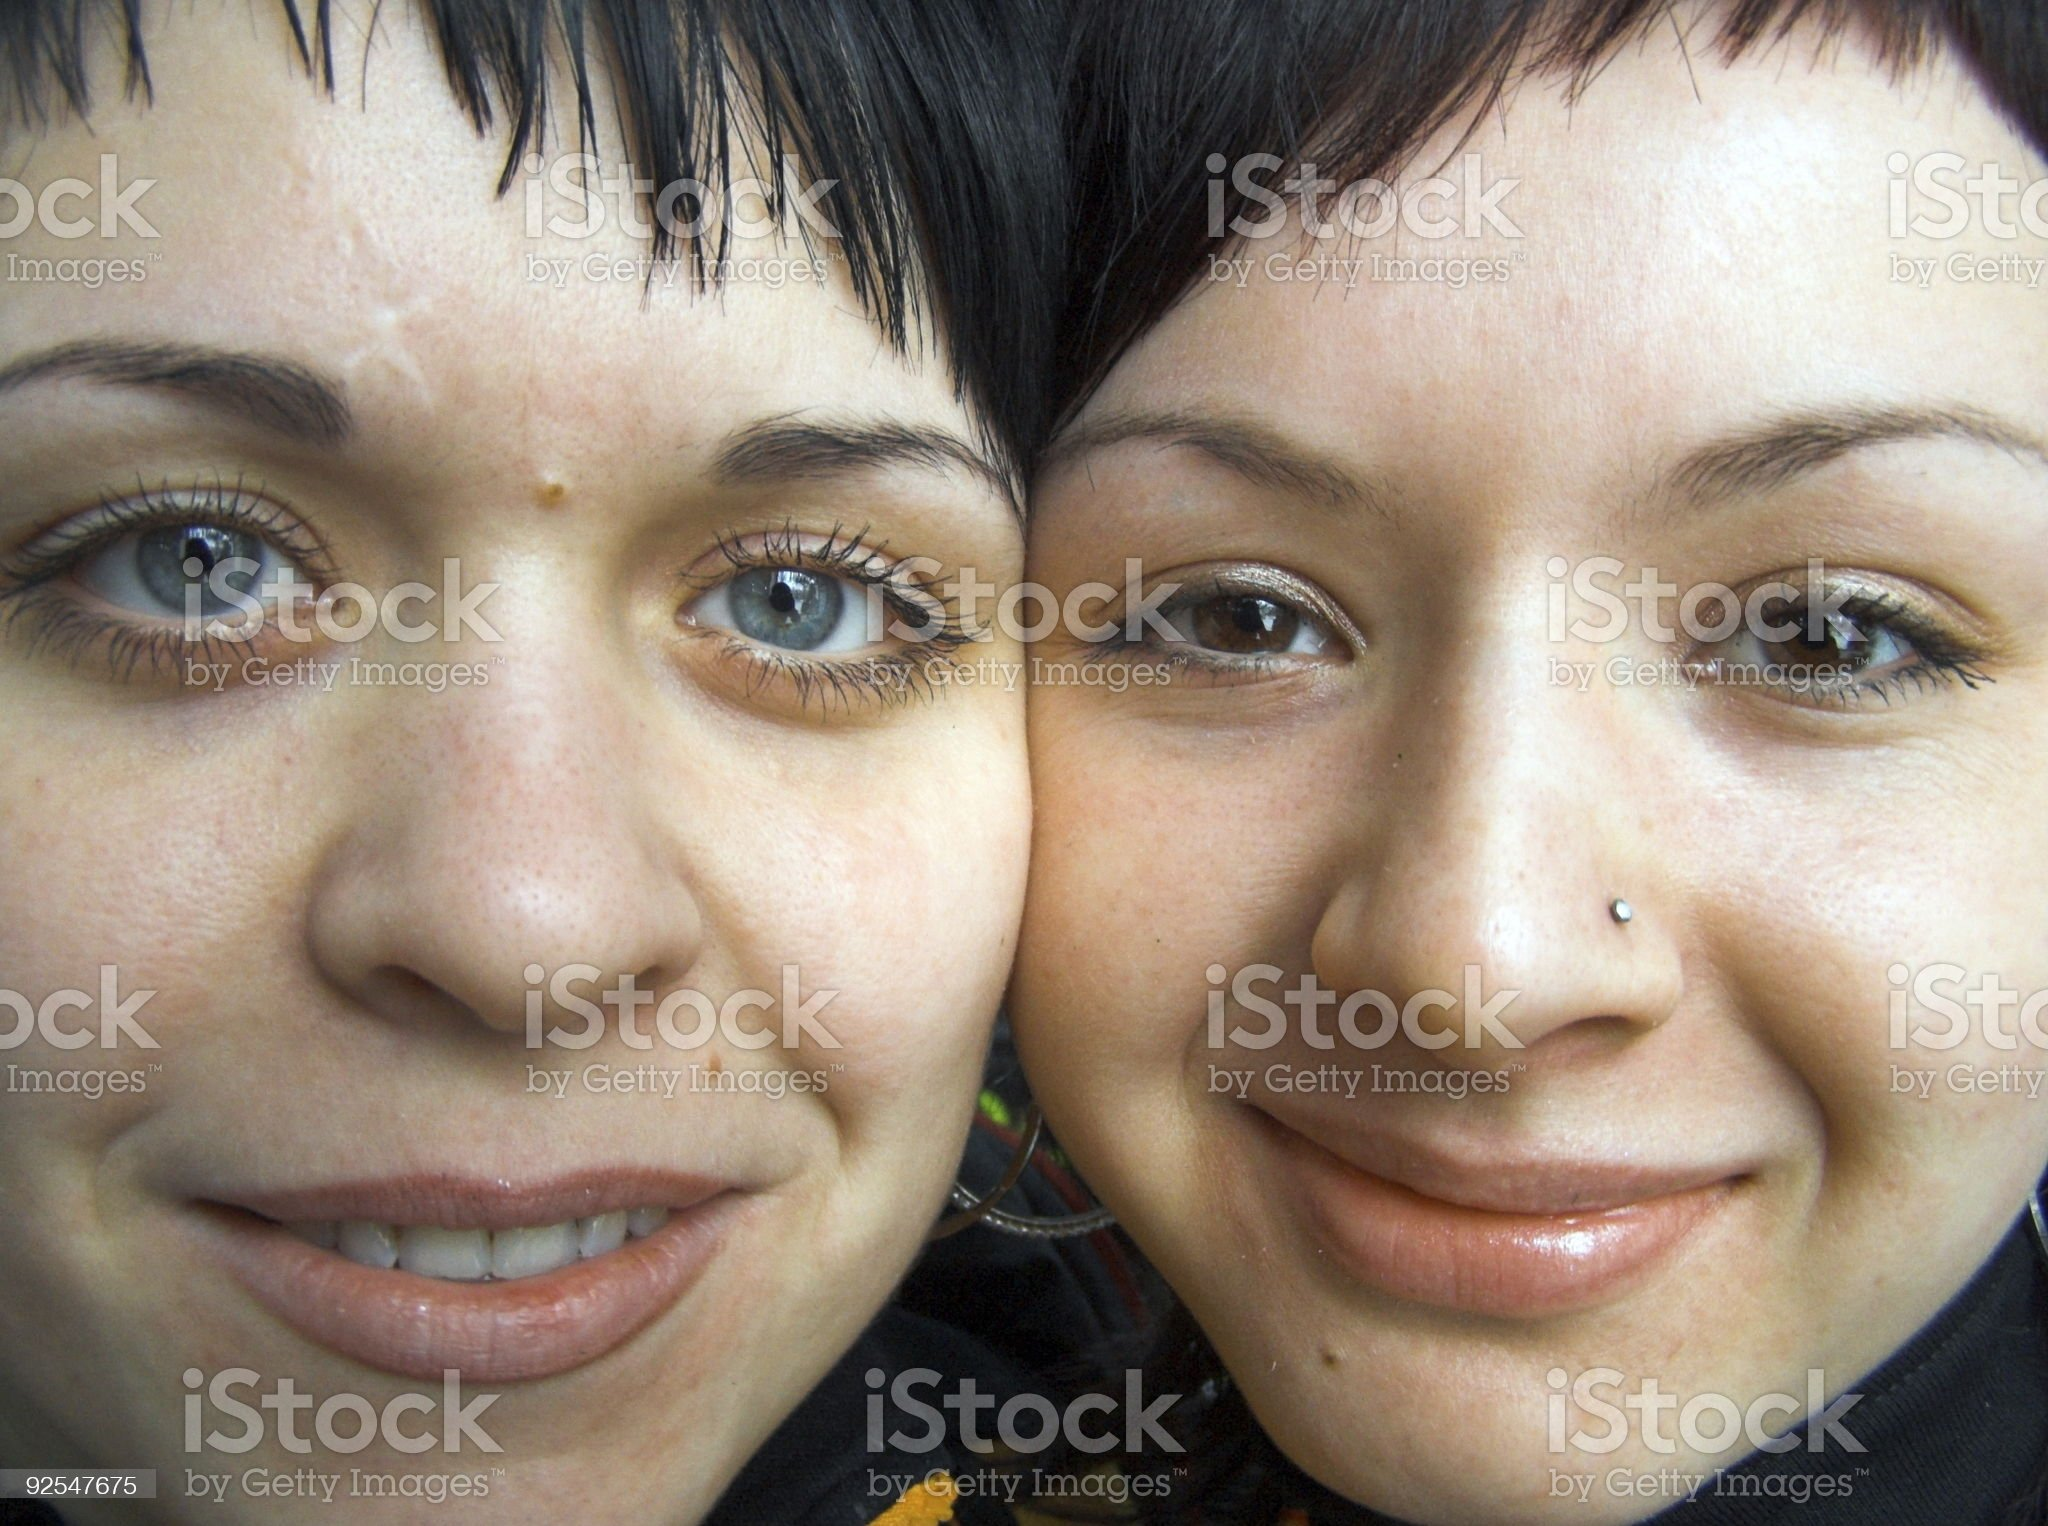 Ridiculous faces. royalty-free stock photo